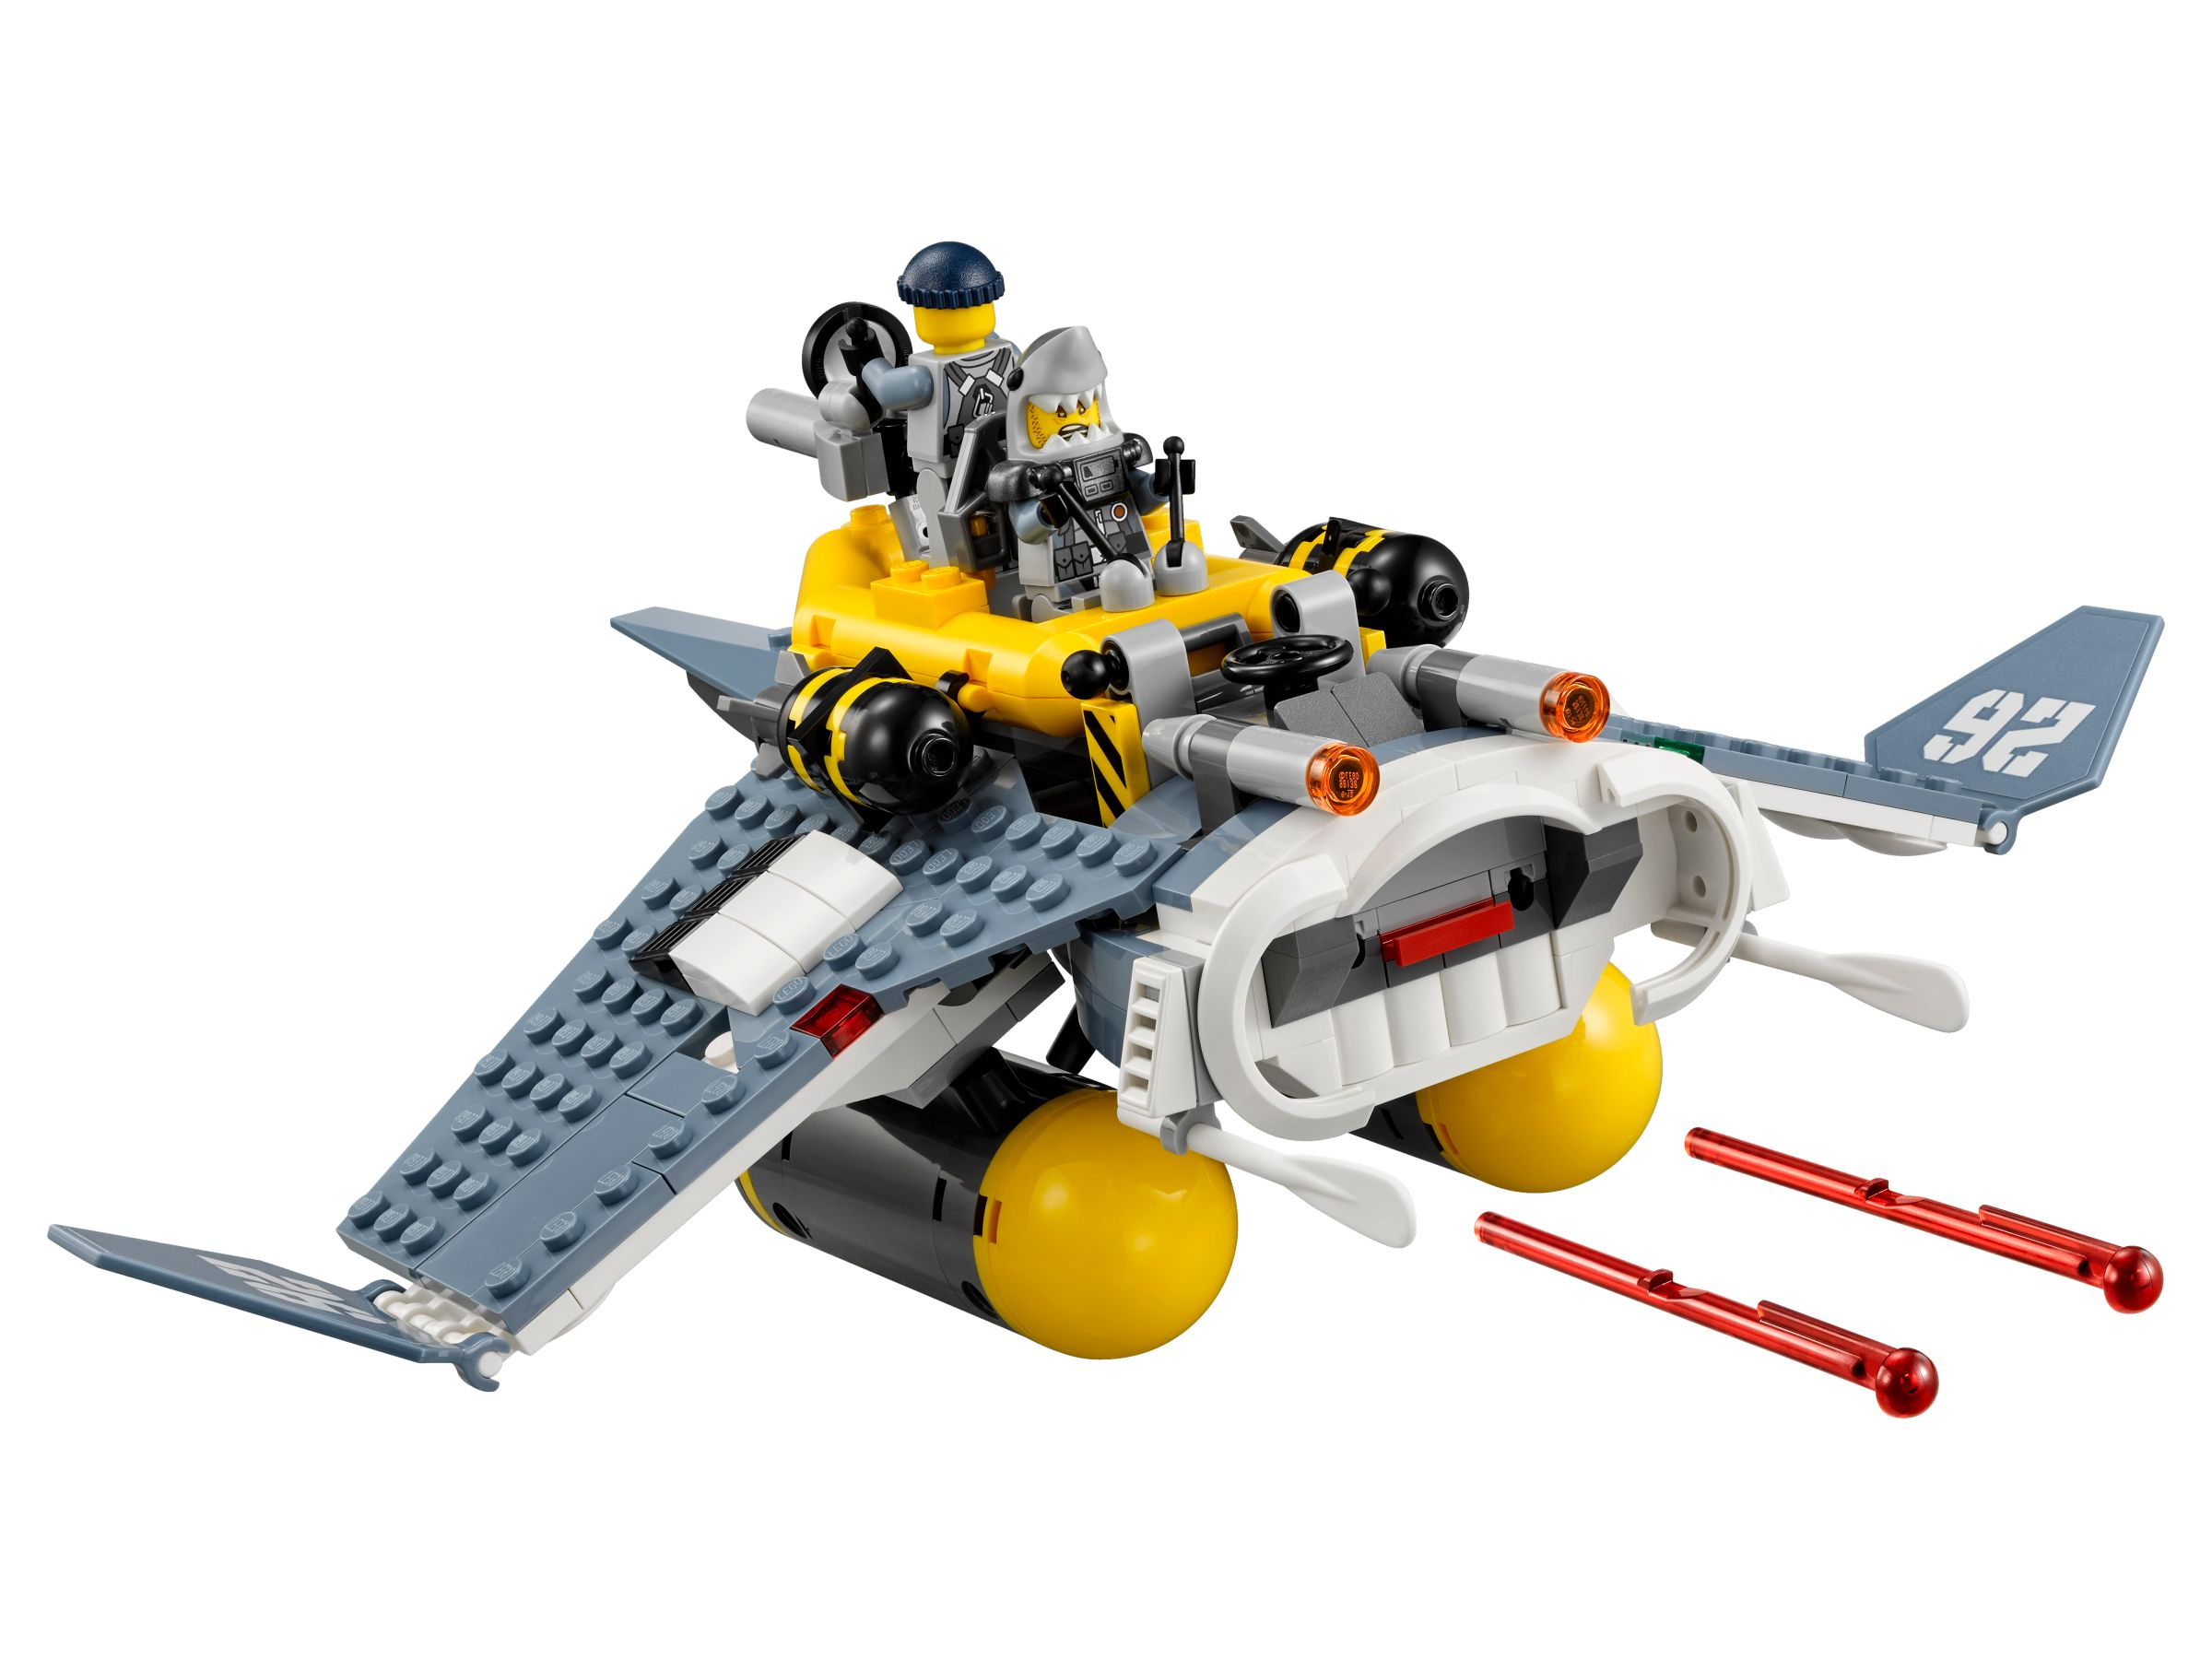 LEGO The LEGO Ninjago Movie 70609 Mantarochen-Flieger LEGO_70609_alt4.jpg